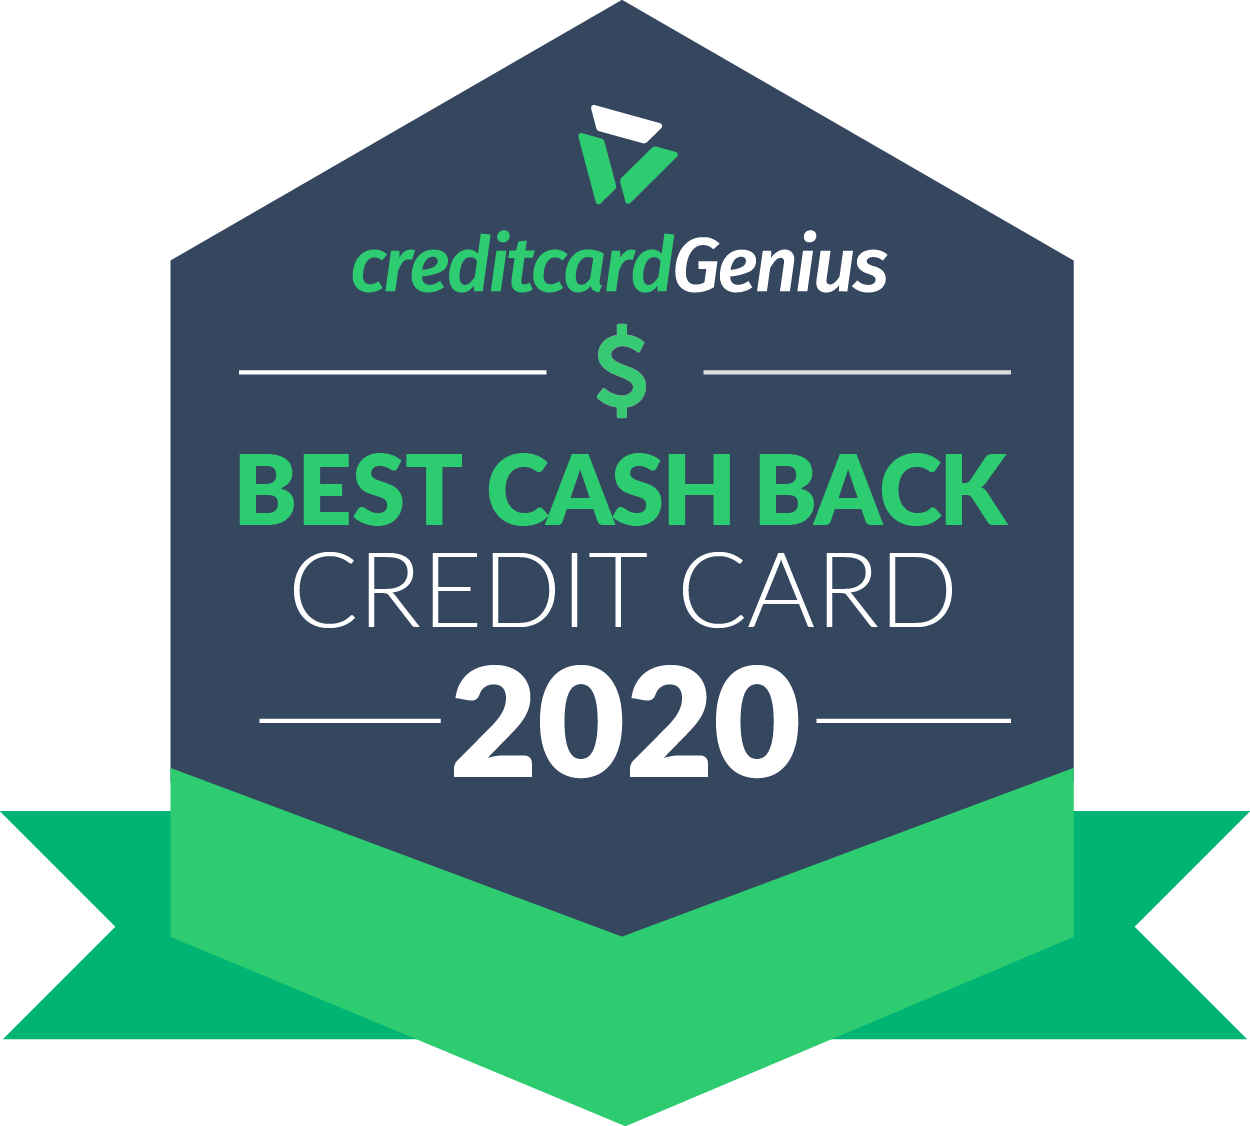 Best cash back credit card in Canada for 2020 award seal